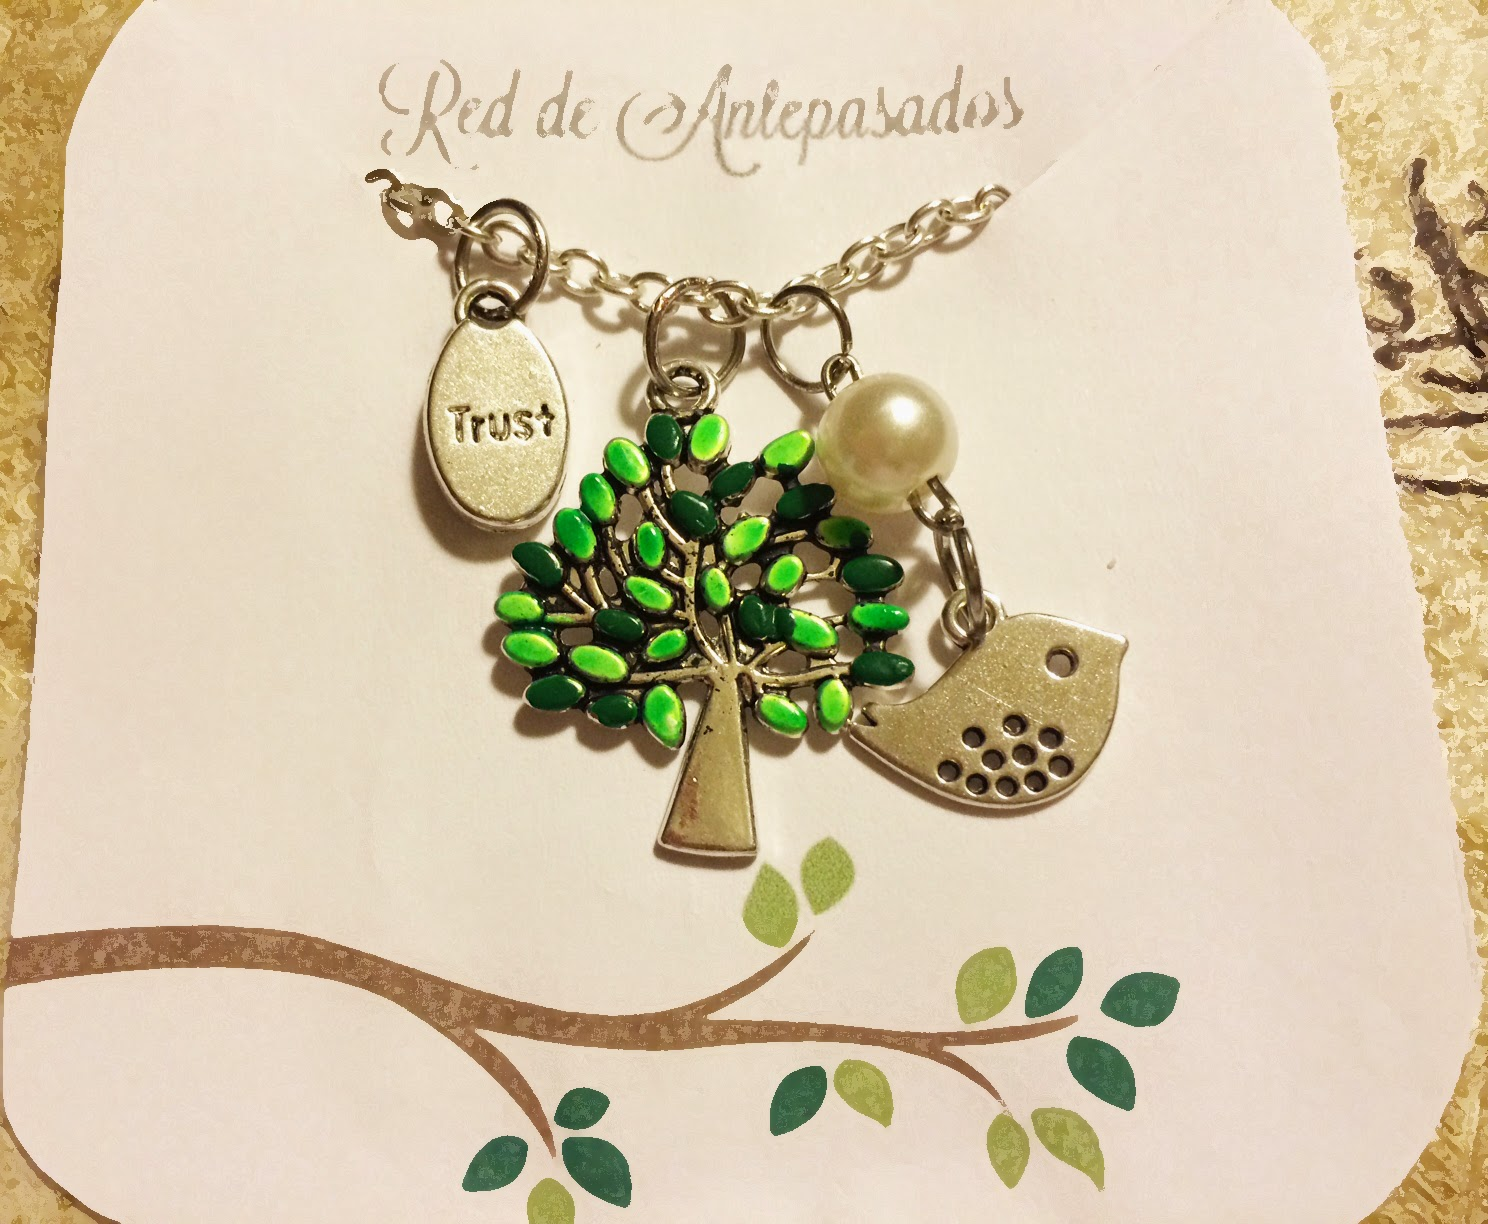 arbol familiar regalo